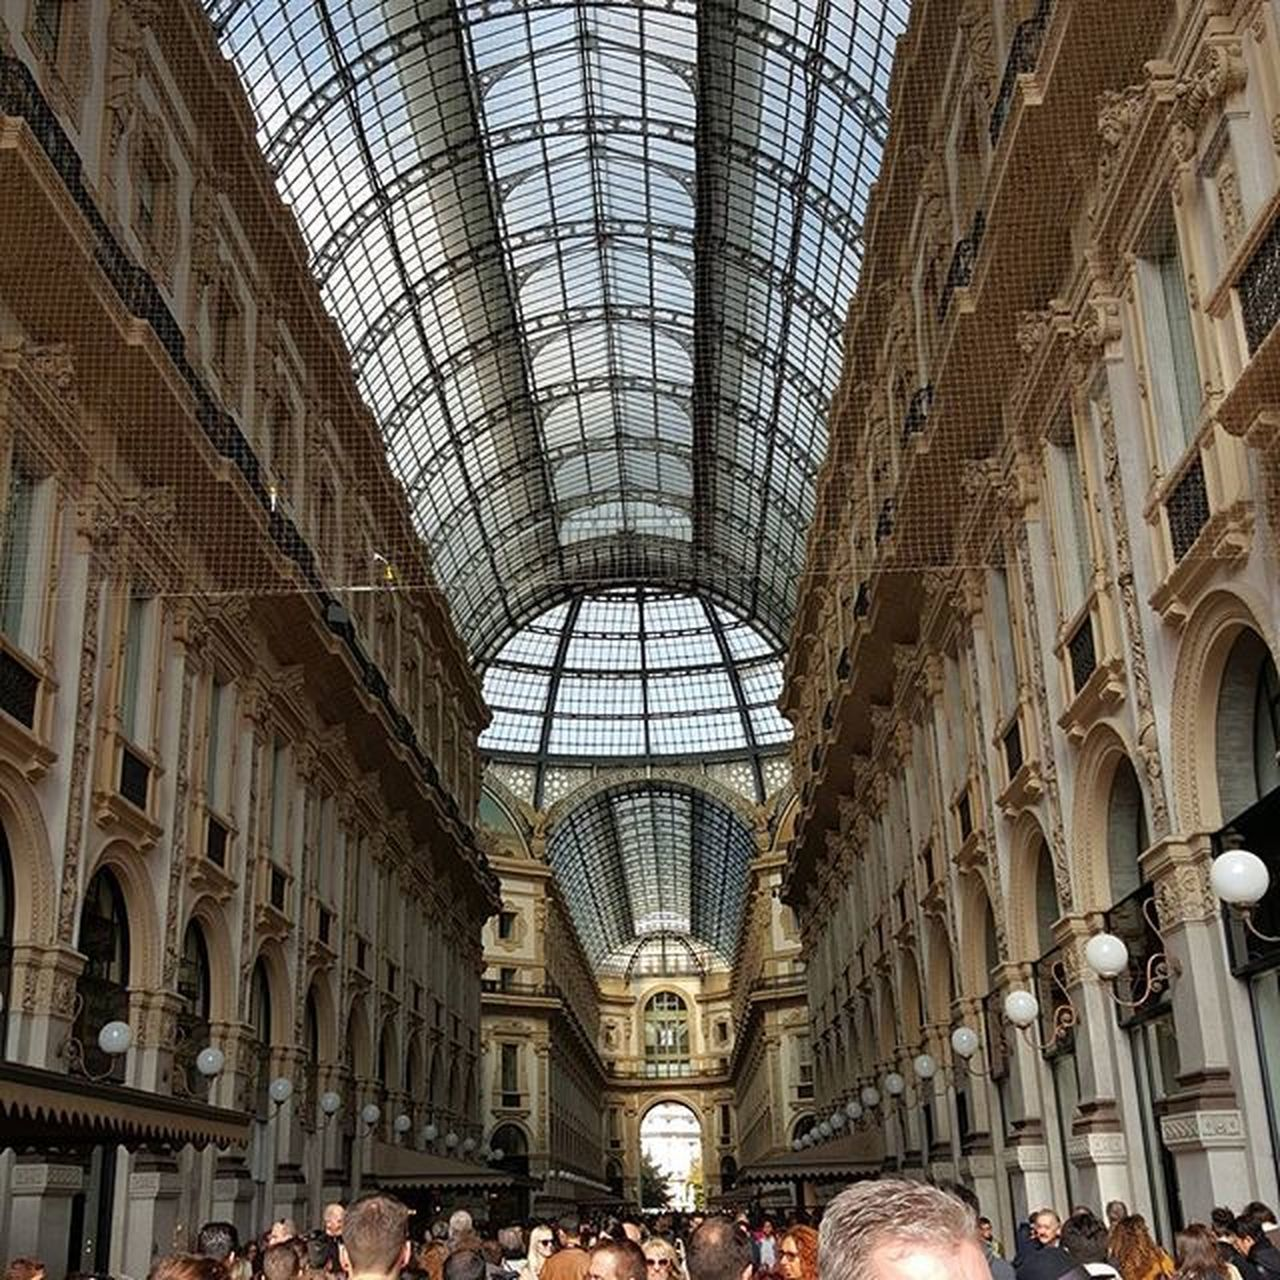 architecture, travel destinations, built structure, tourism, arch, travel, history, ceiling, dome, indoors, city, day, people, adult, adults only